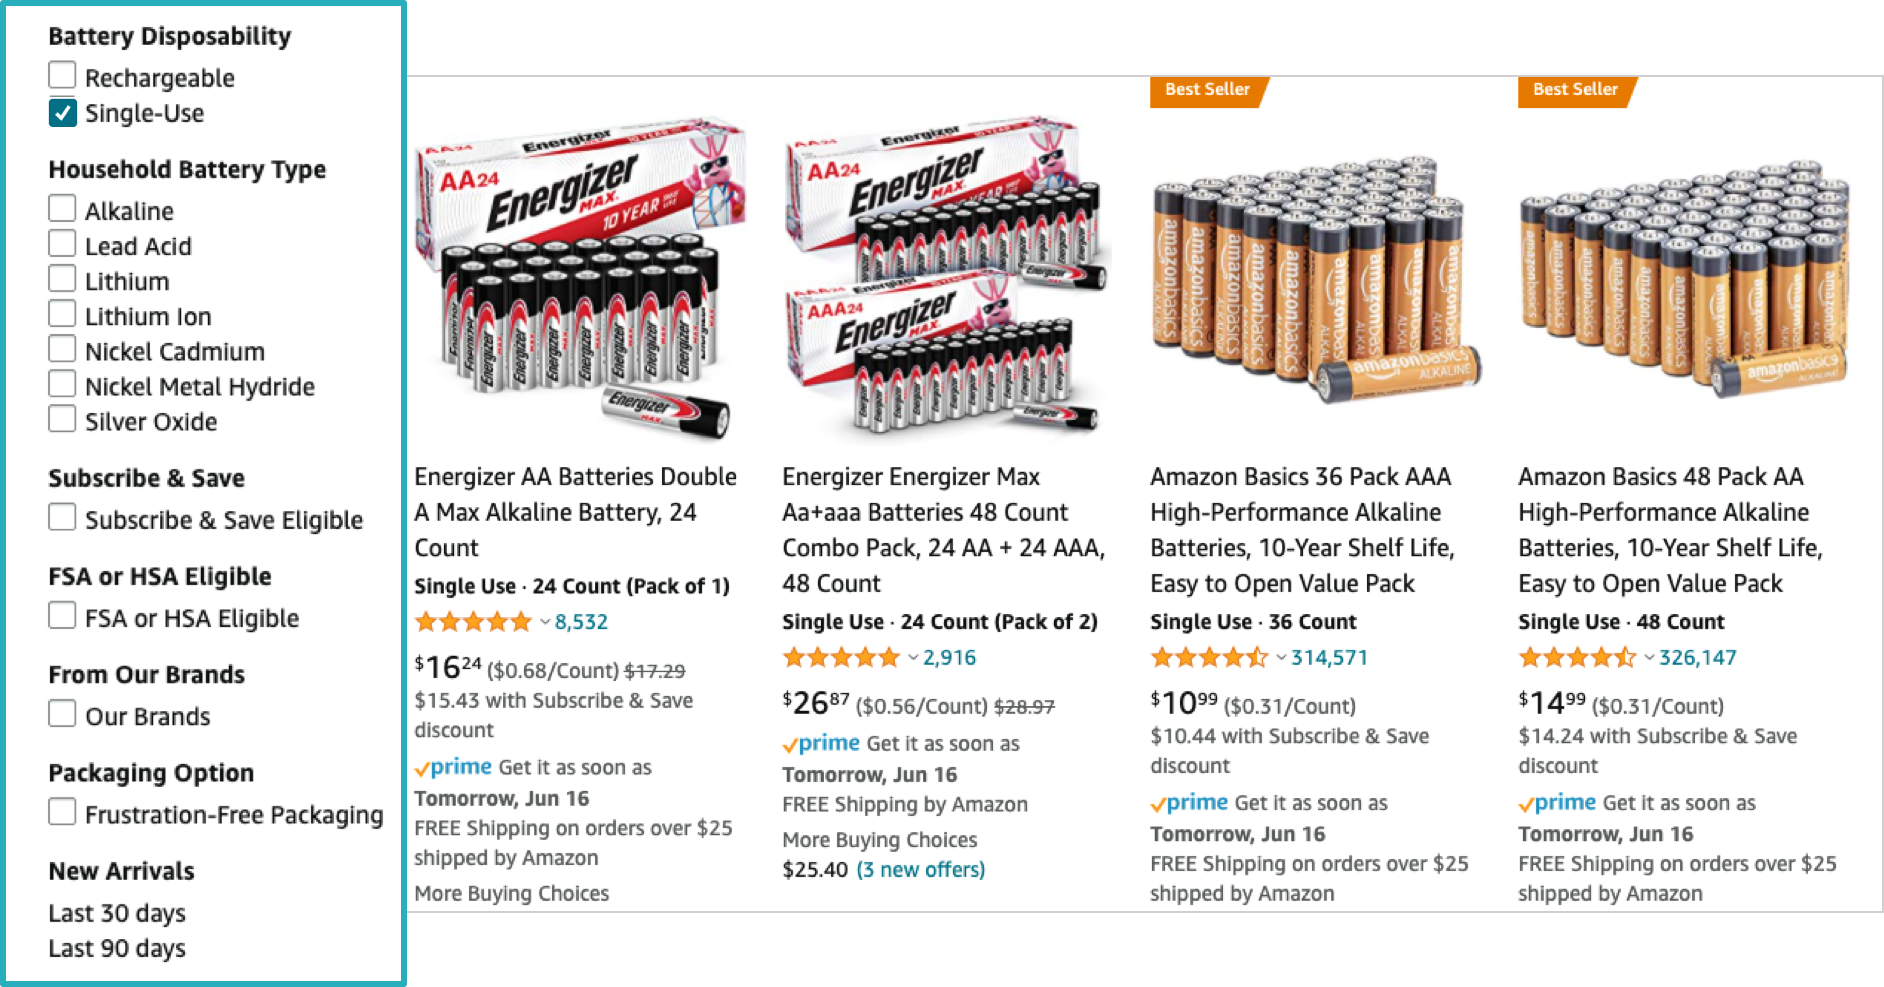 amazon filter menu on batteries result page